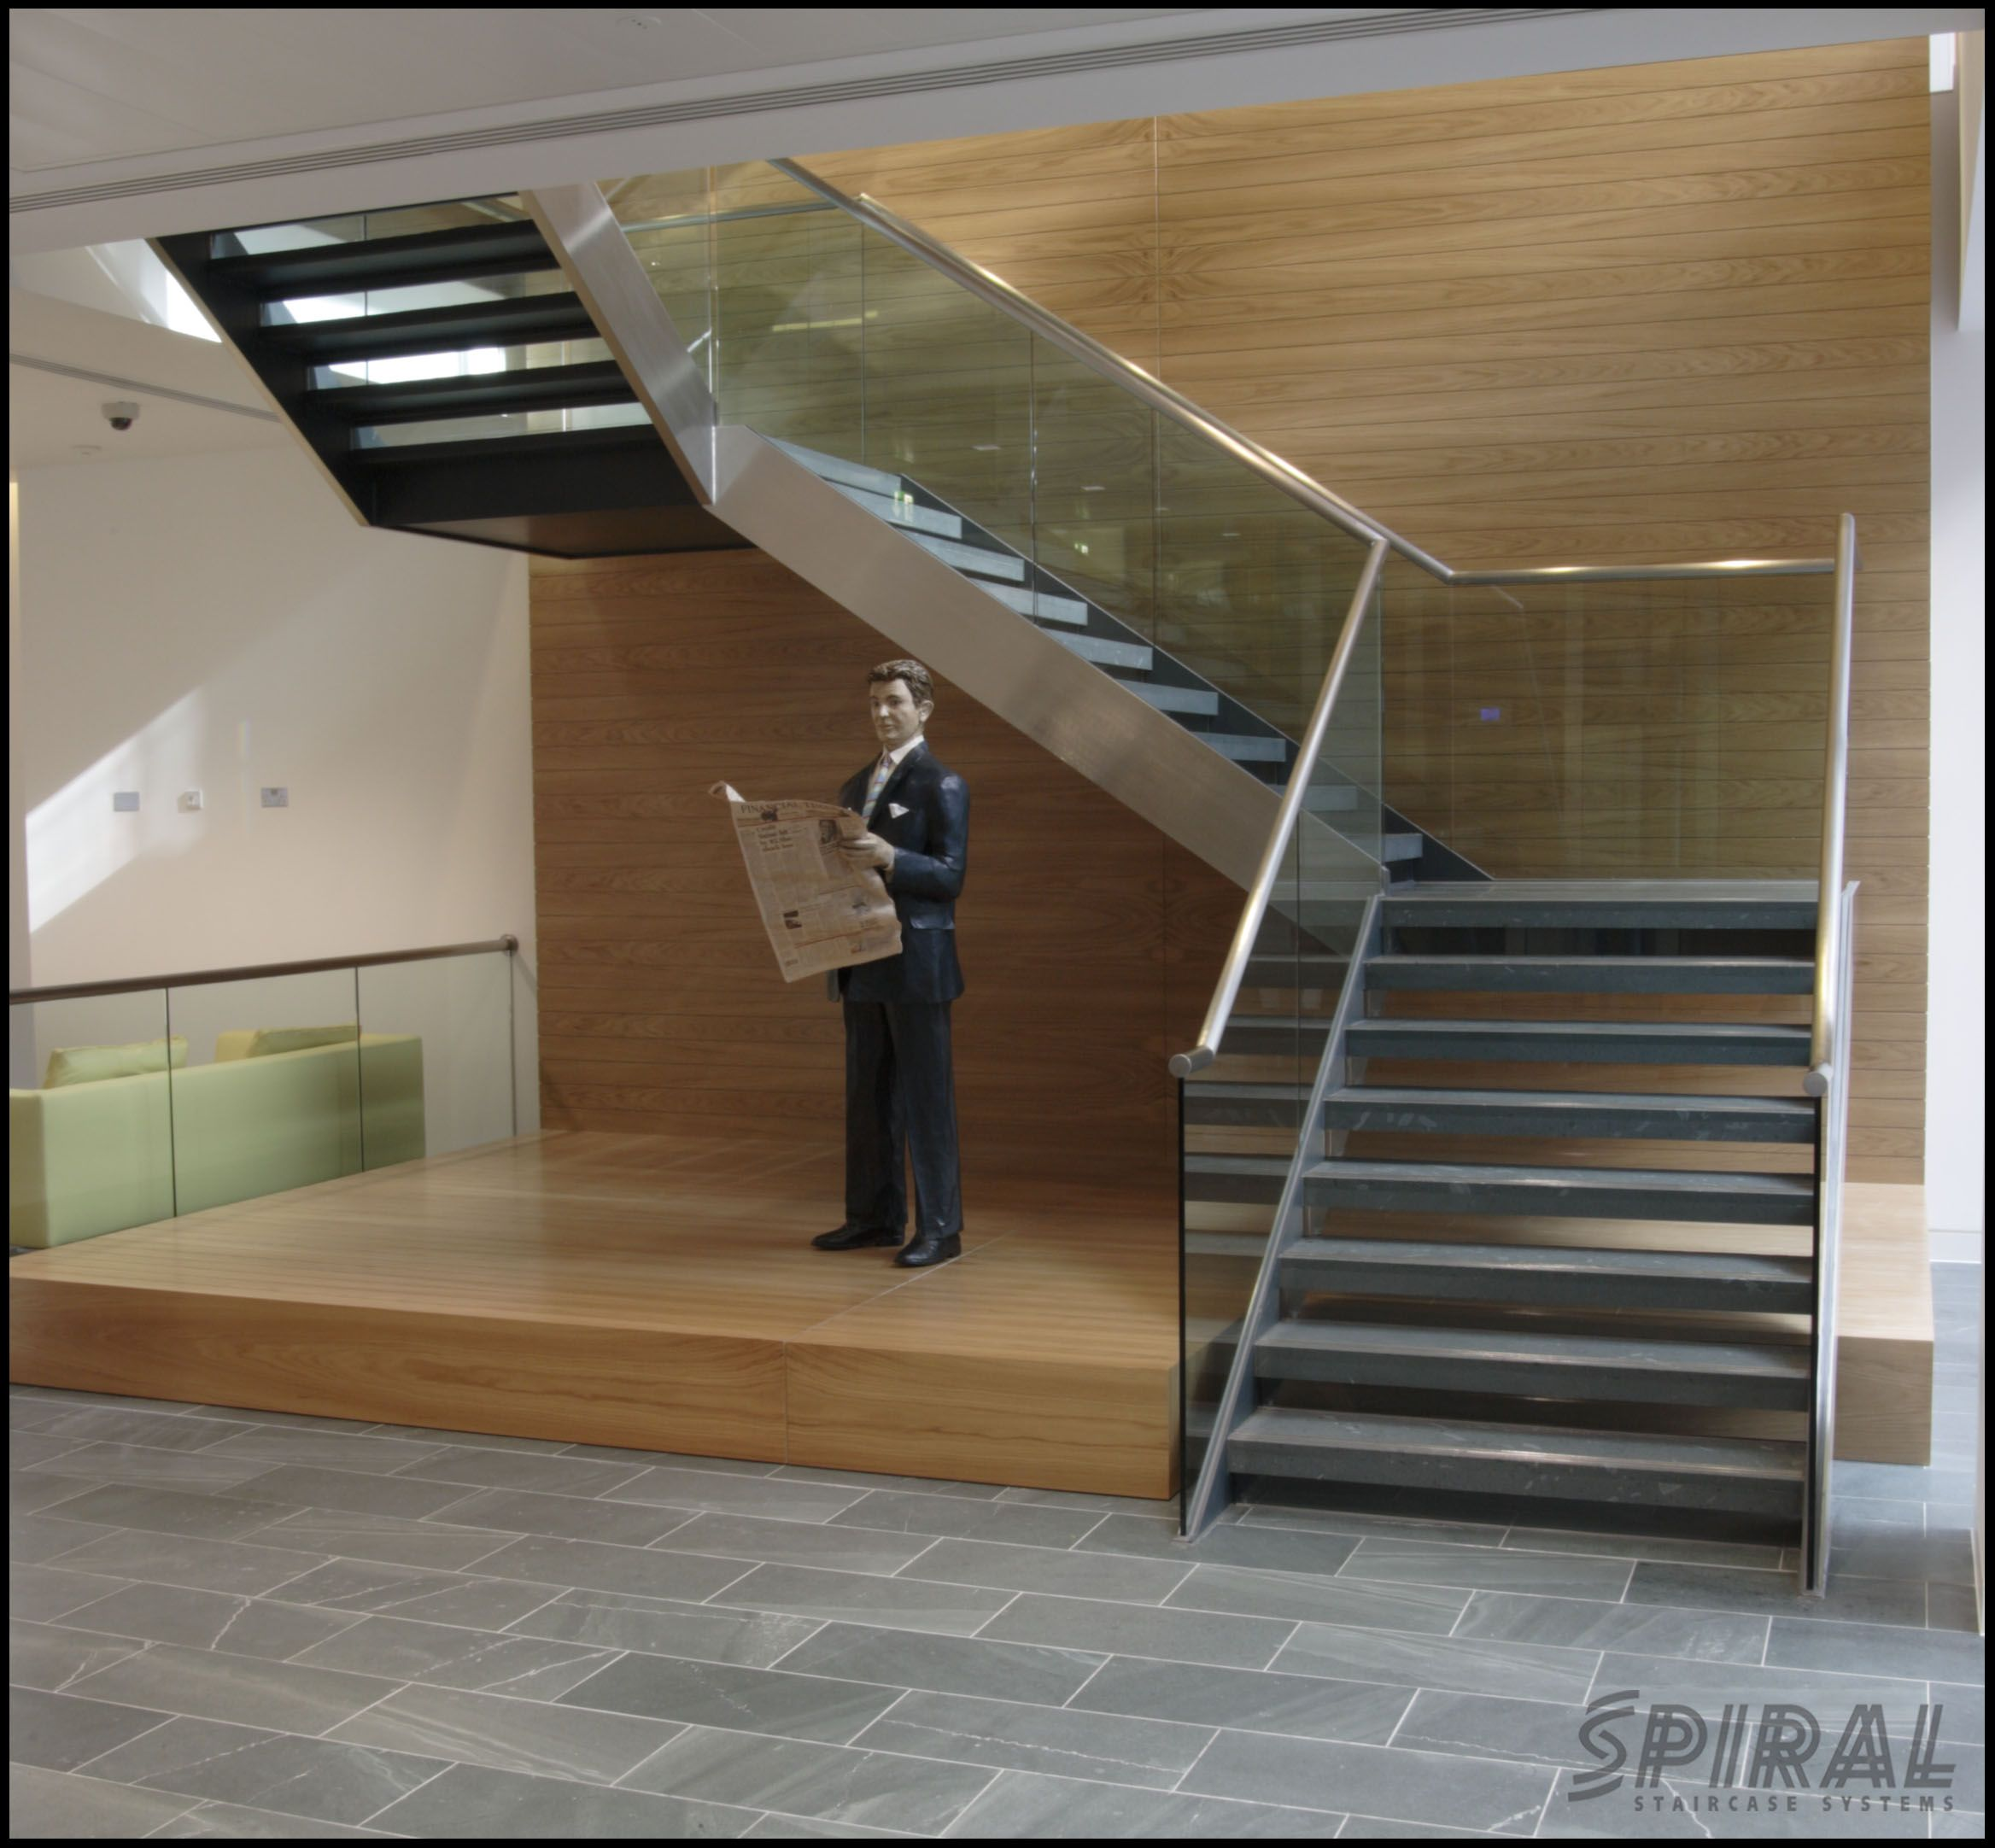 Dog-Leg staircase finished in stone, stainless steel and ...